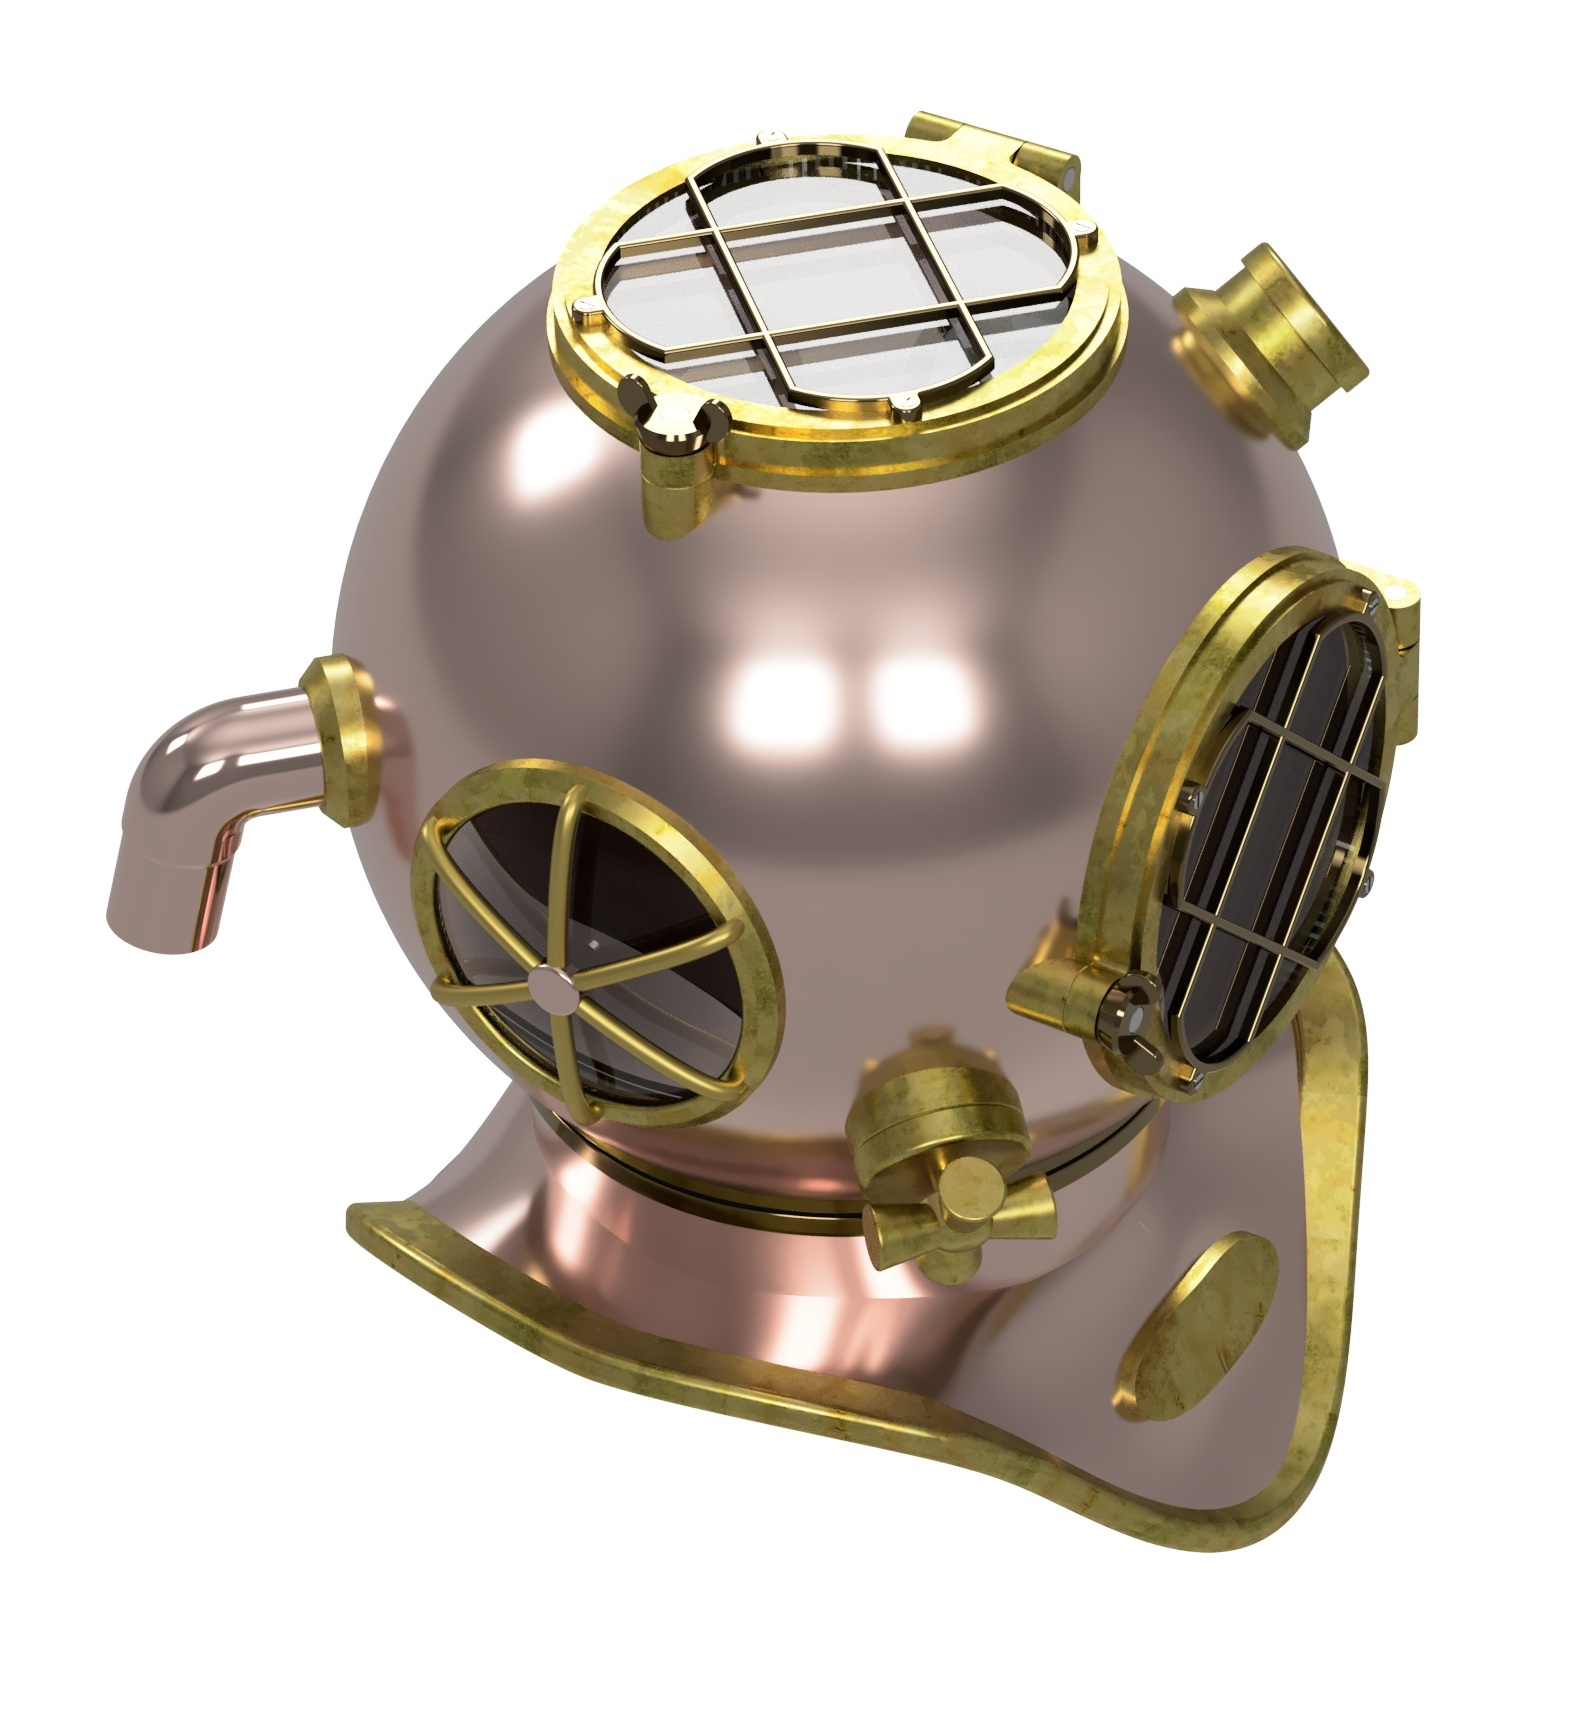 Diving_Helmet_2018-Nov-25_02-48-57PM-000_CustomizedView20735971983_png.jpg